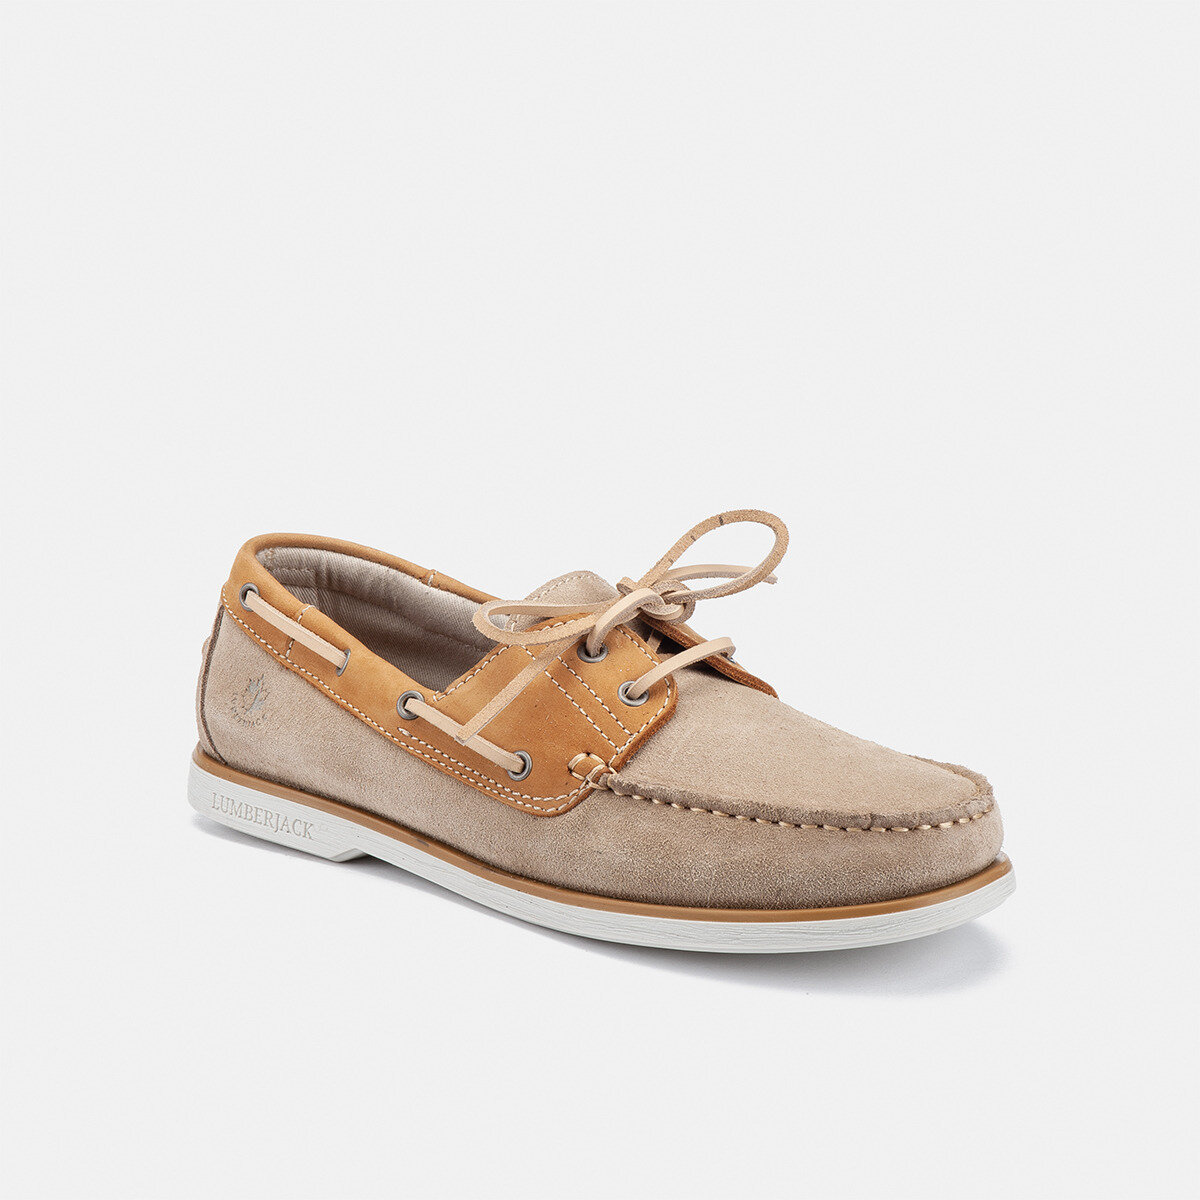 NAVIGATOR MOUTON SAND/YELLOW Man Boat shoes